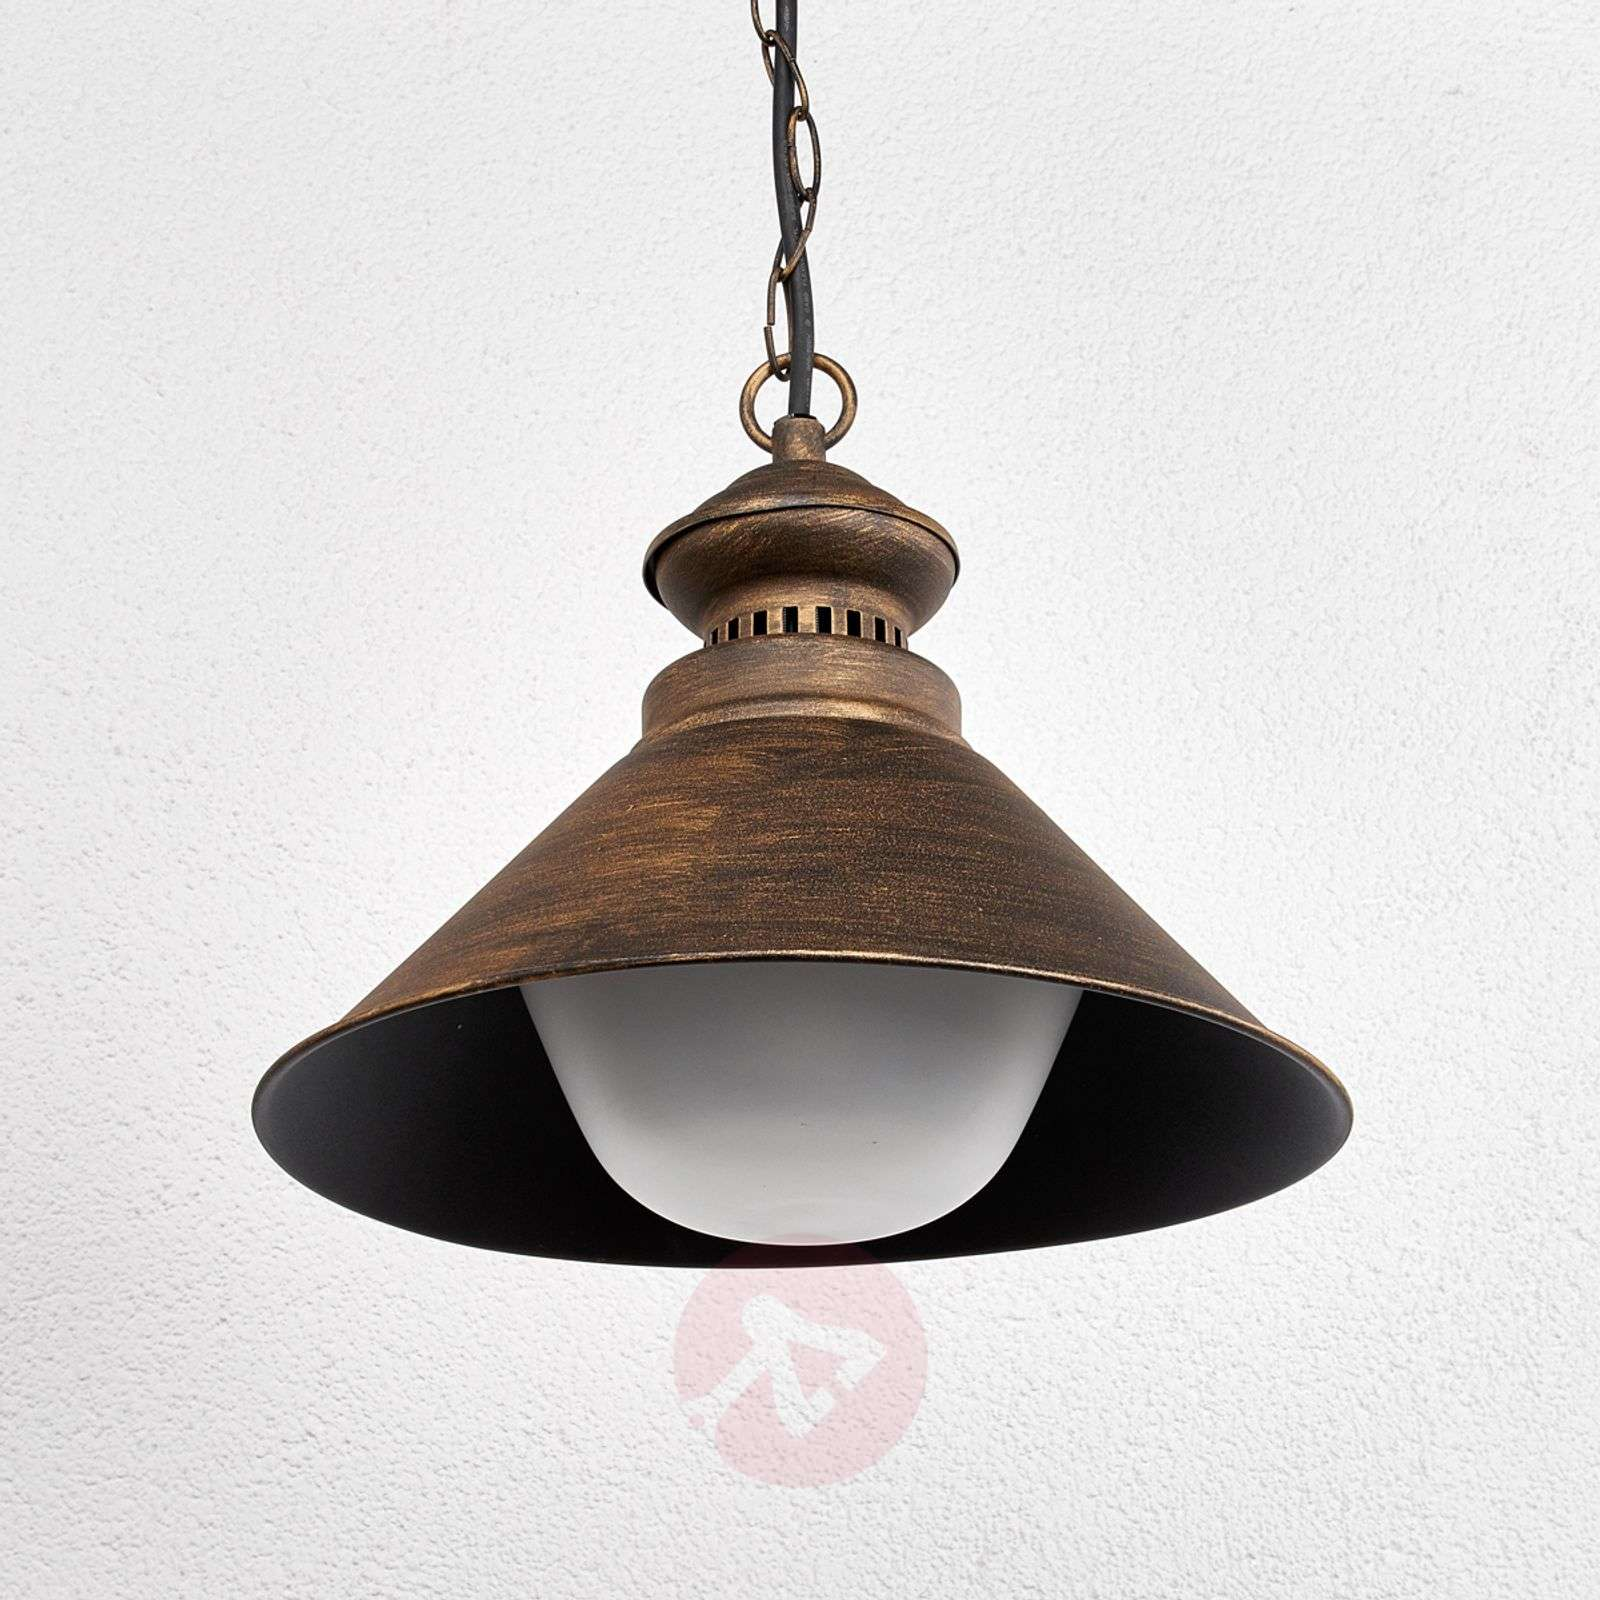 Outdoor hanging lamp Millane, black-gold-9630047-01